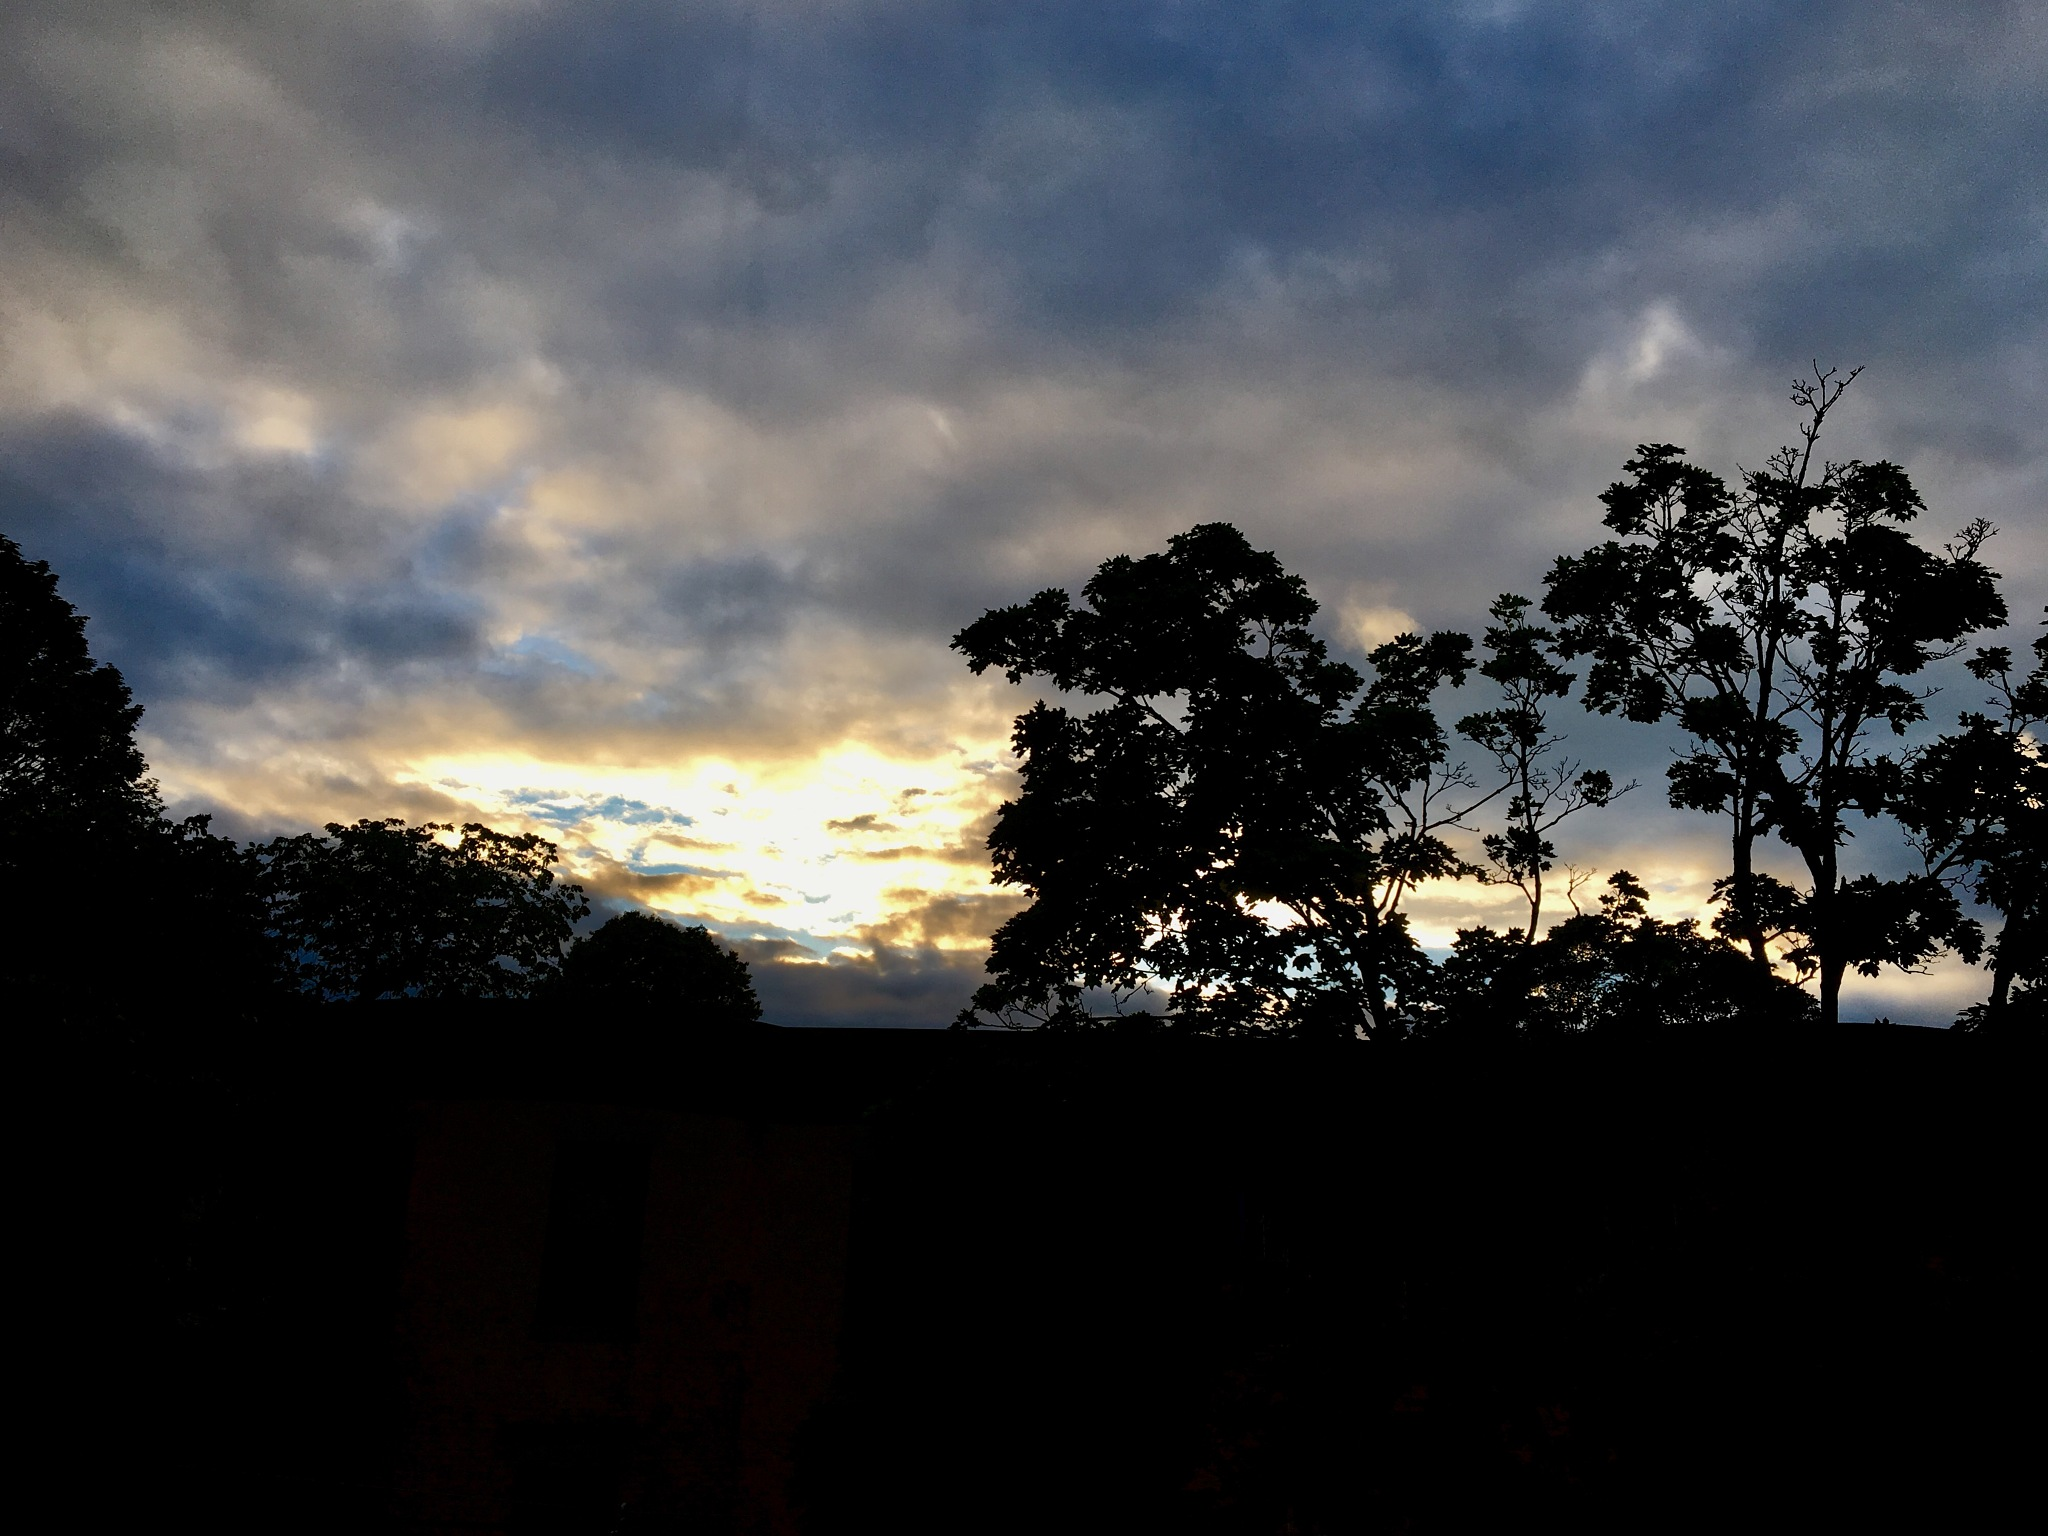 Evening sky  by DonnaFuller